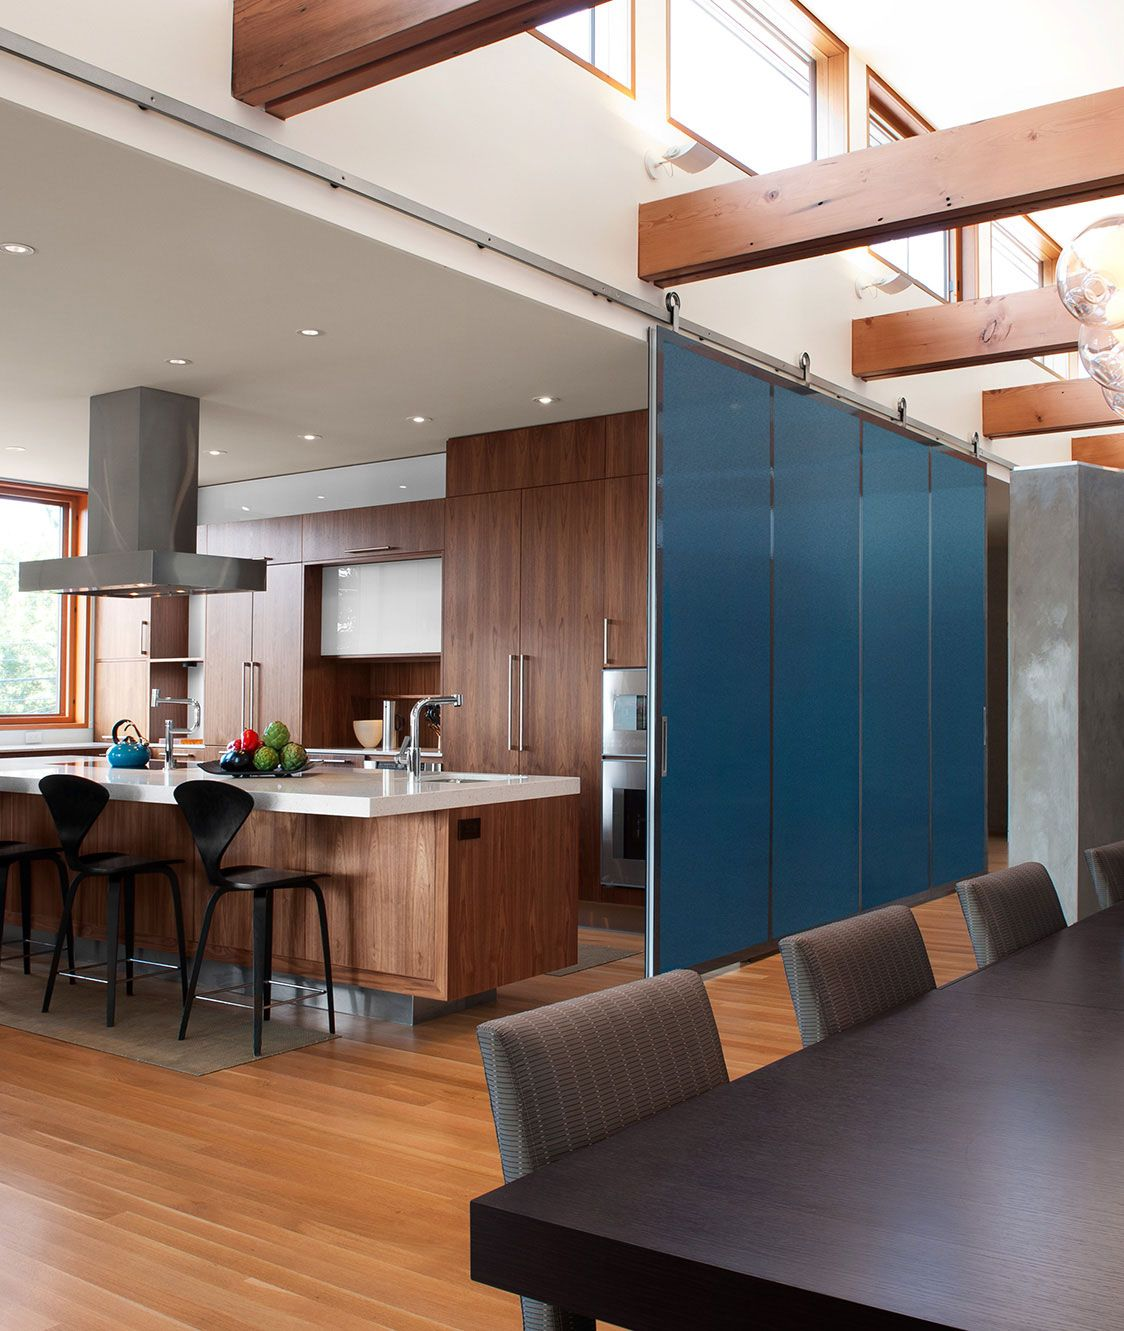 Krownlabs BALDUR Stainless Steel Top Mount Sliding Barn Door Hardware Is Used In This Modern Residence To Hold A Panel Between The Kitchen And Dining Room